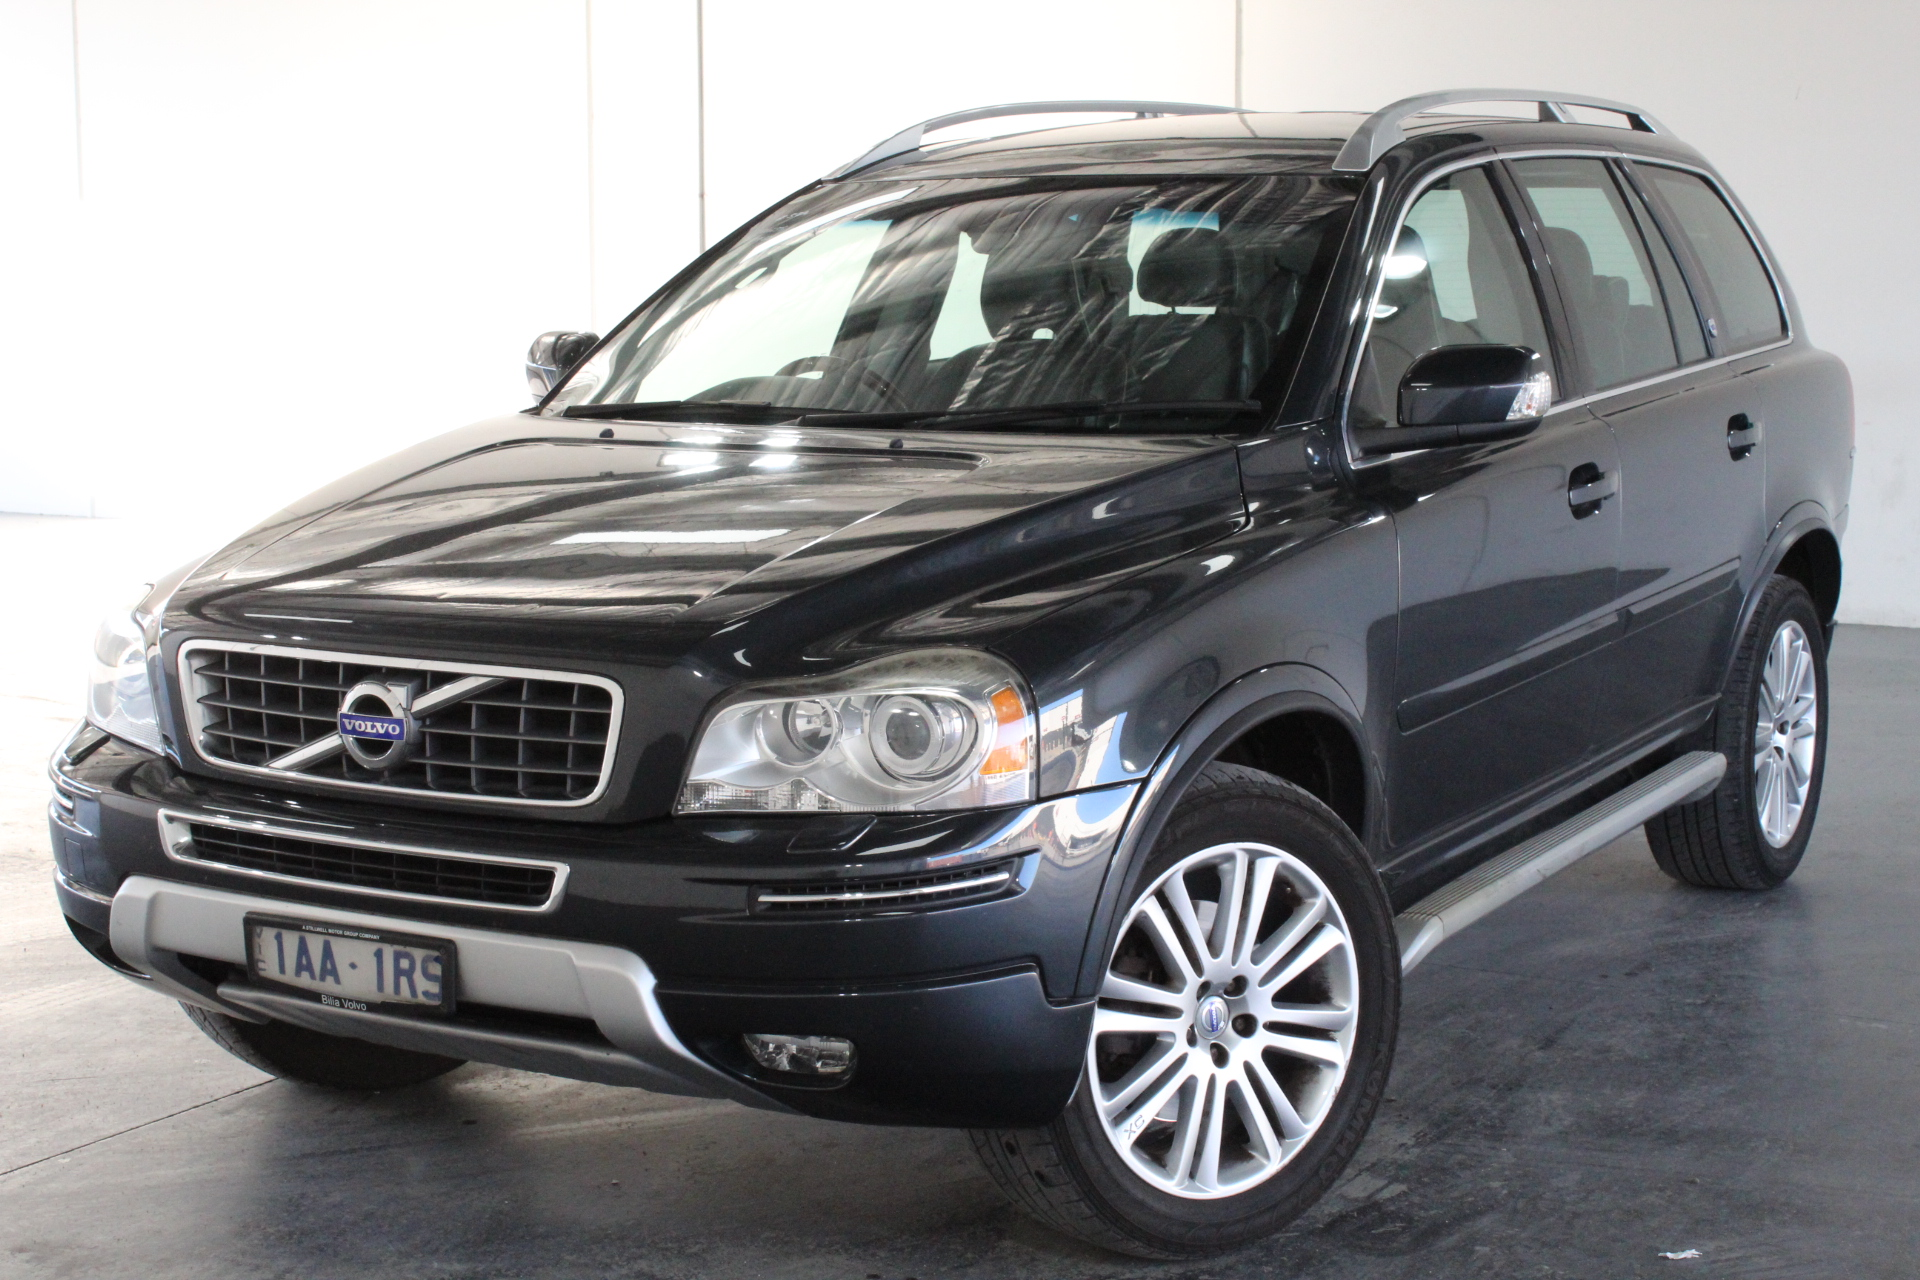 2013 Volvo XC90 3.2 Executive Automatic 7 Seats Wagon